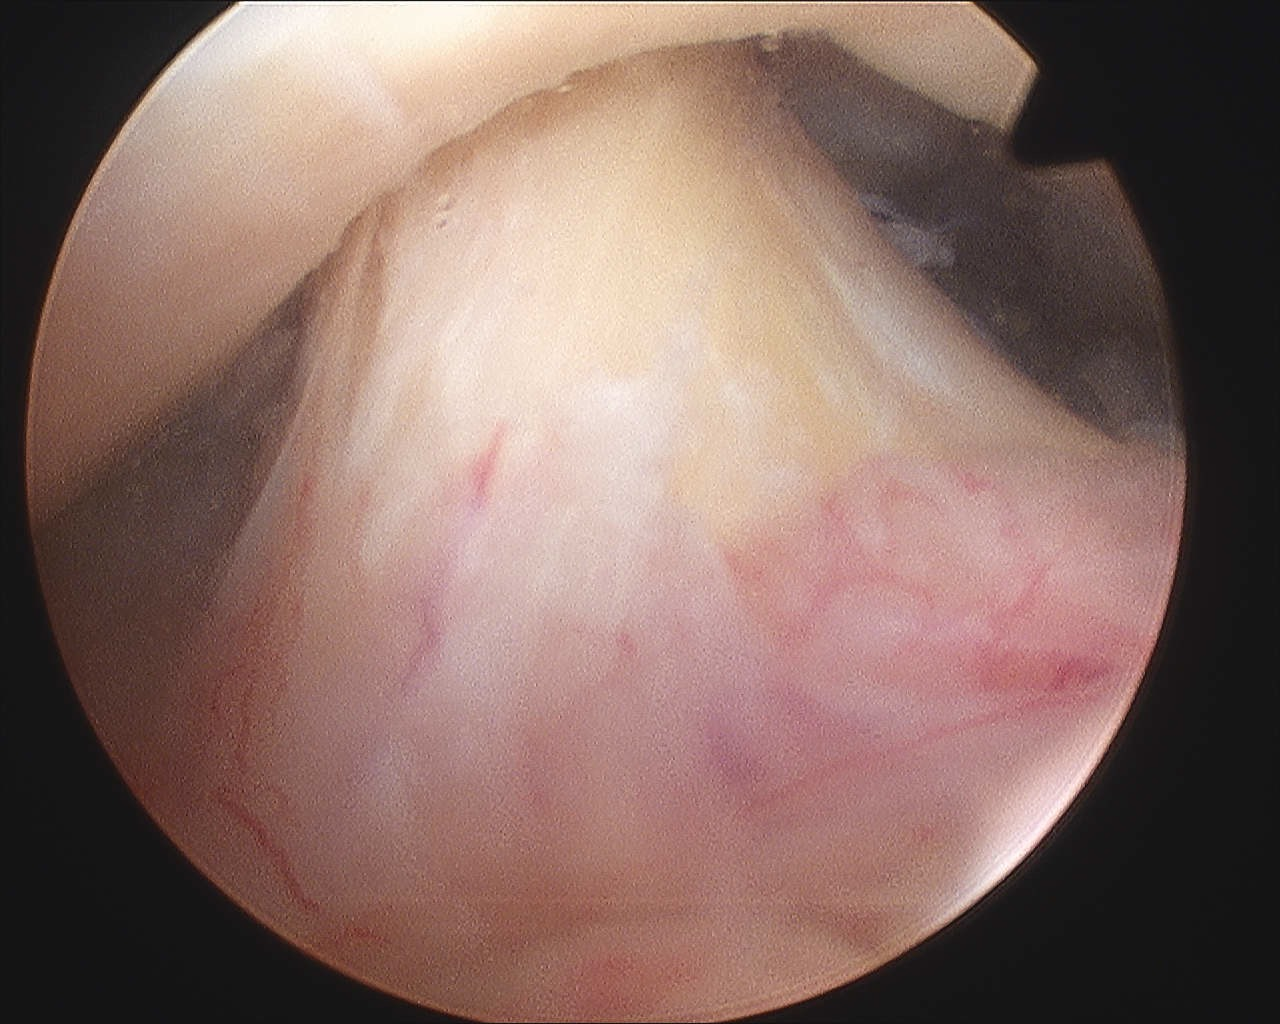 ACL Normal Arthroscopy